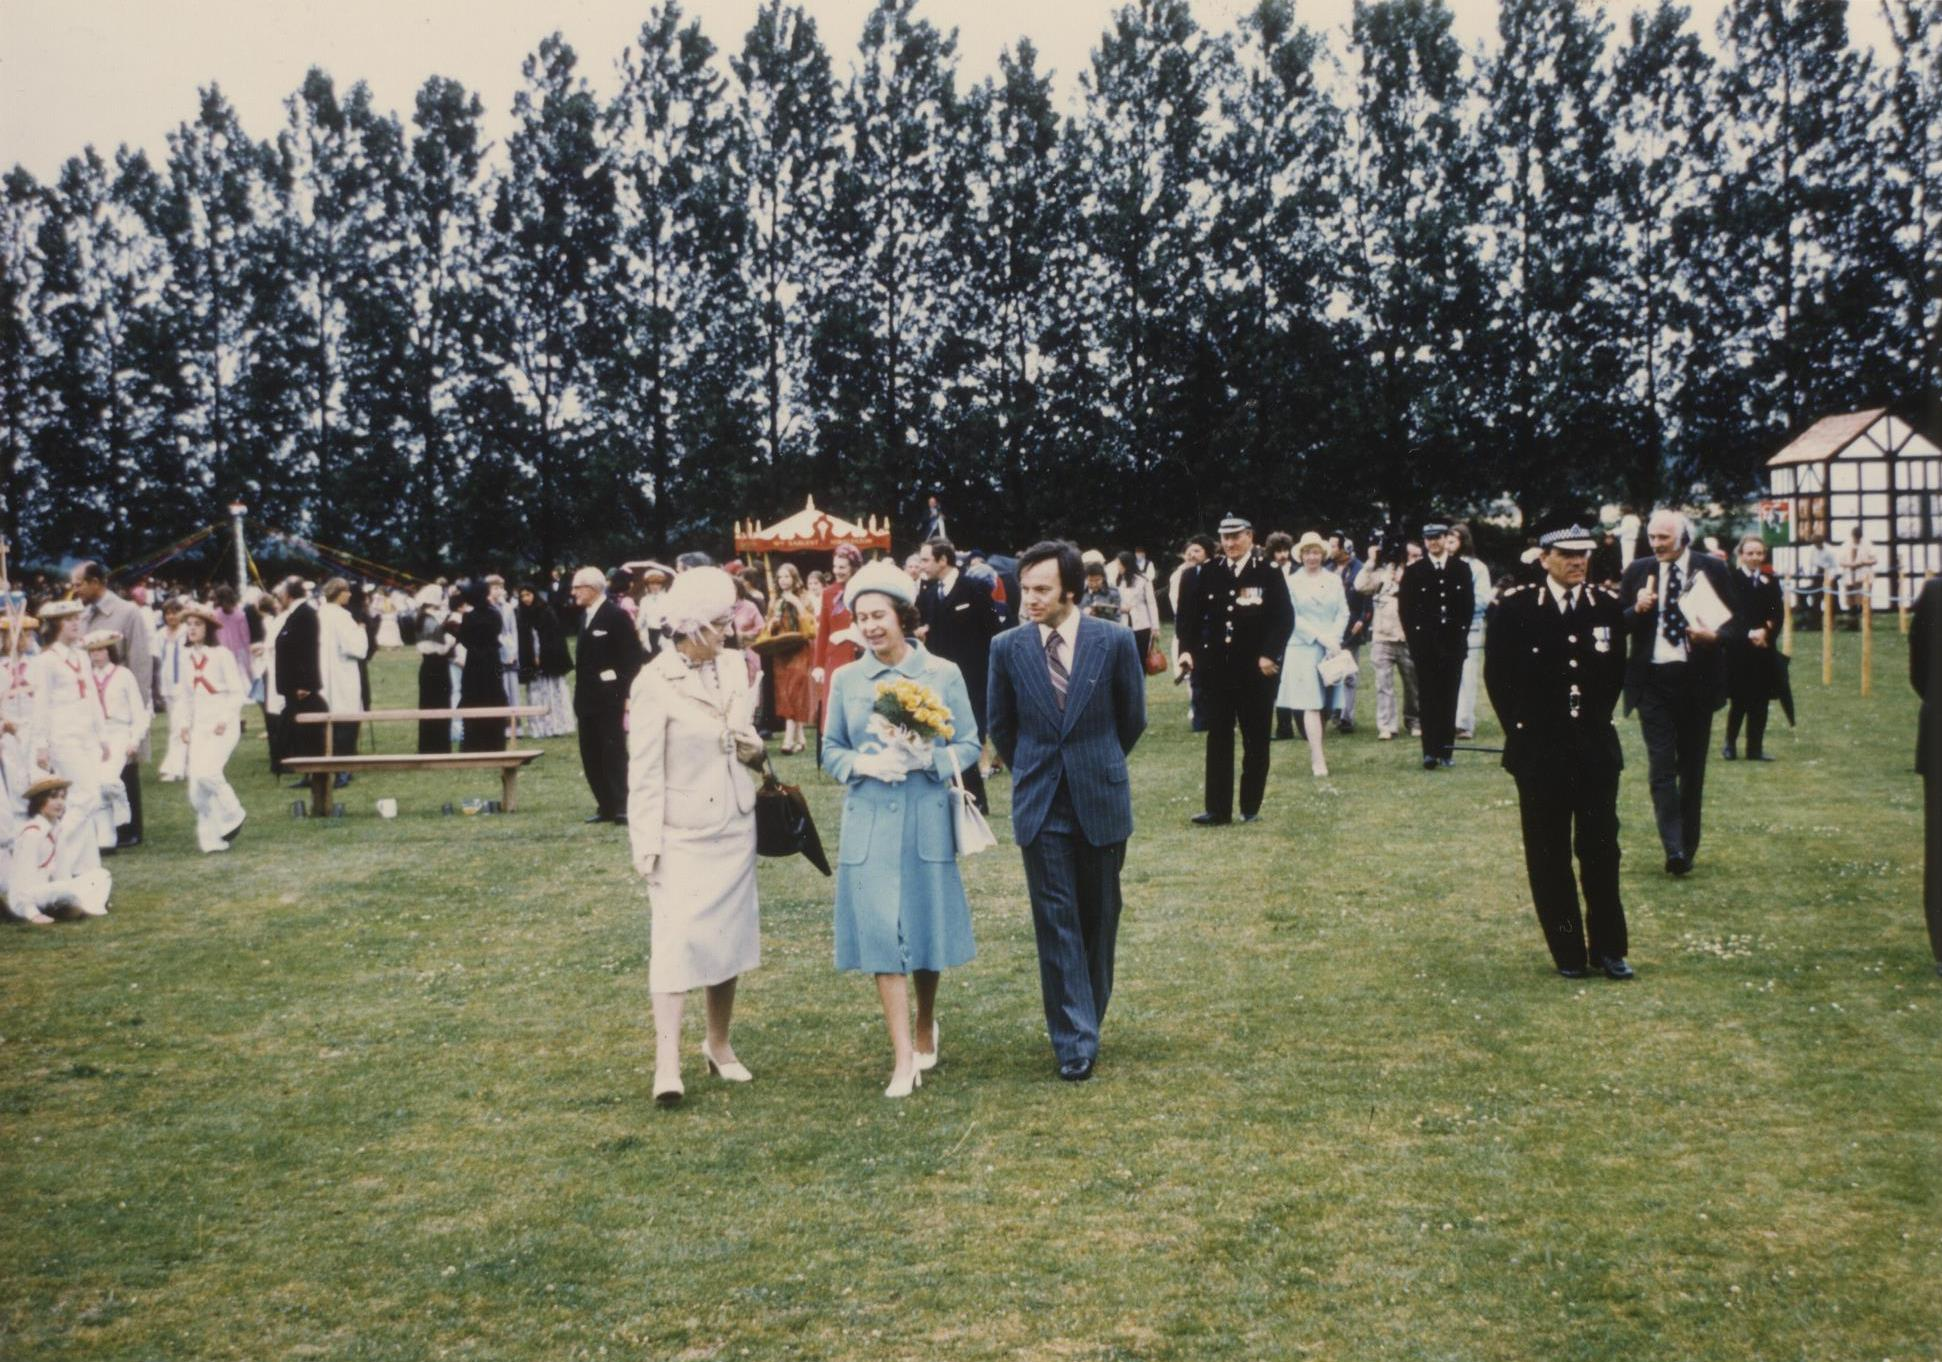 Her Majesty The Queen at Brigg Fair 12th July 1977 (archive ref CCHU-4-1-9-2)